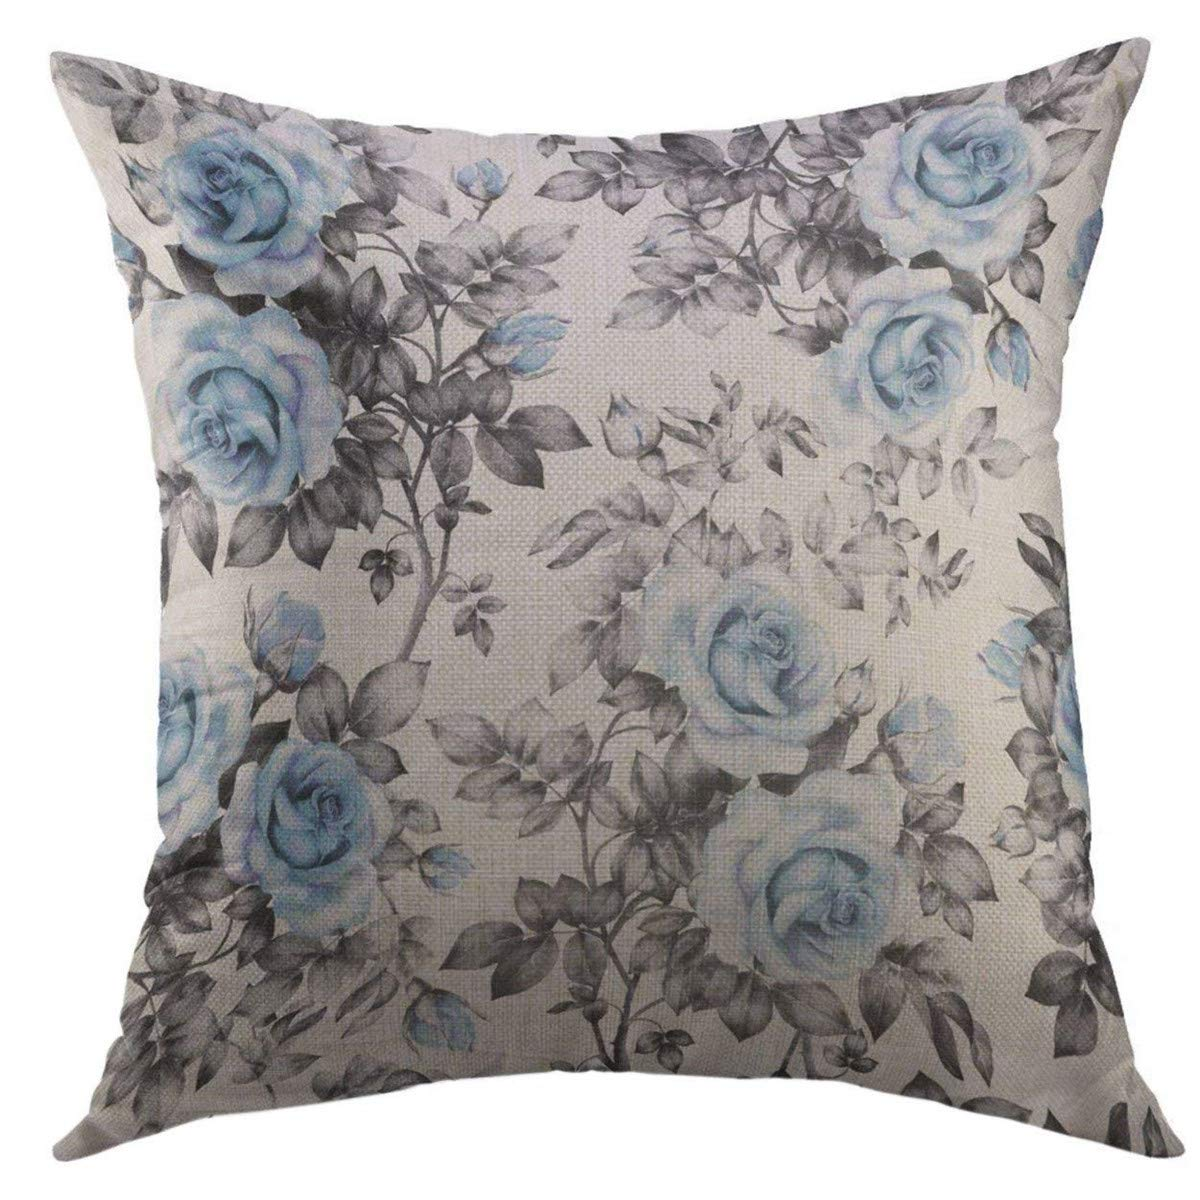 Mugod Decorative Throw Pillow Cover for Couch Sofa,Black White with Blue Flowers Leaves Watercolor Floral Pattern Rose in Pastel Color for Gray Retro Home Decor Pillow case 18x18 Inch